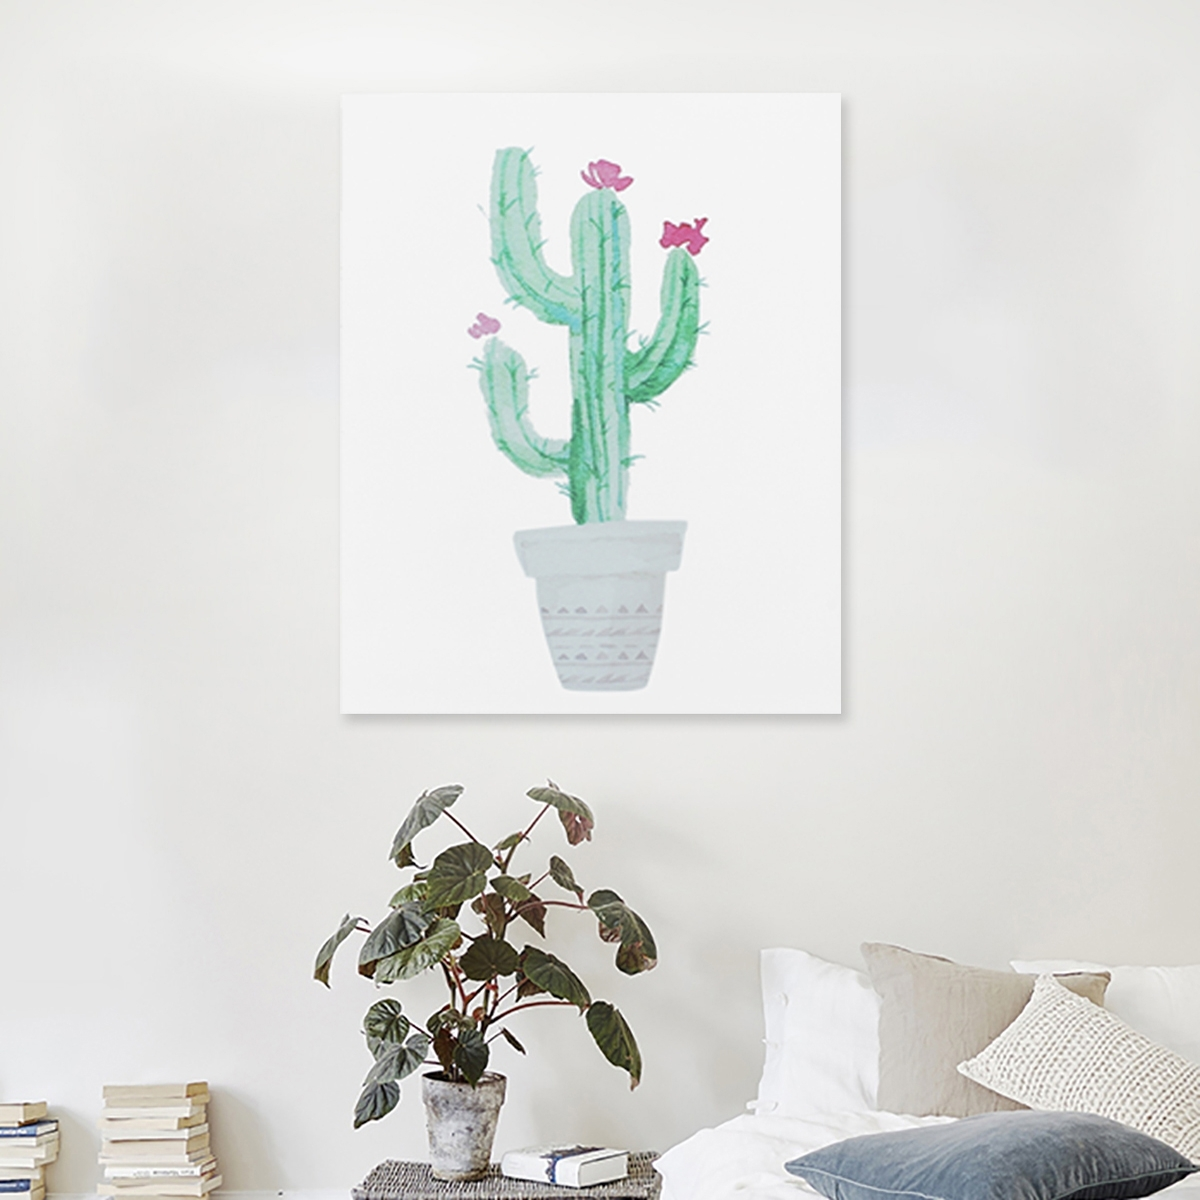 Watercolor Canvas Cactus Painting Print Picture Modern Home Wall Art intended for Cactus Wall Art (Image 19 of 20)